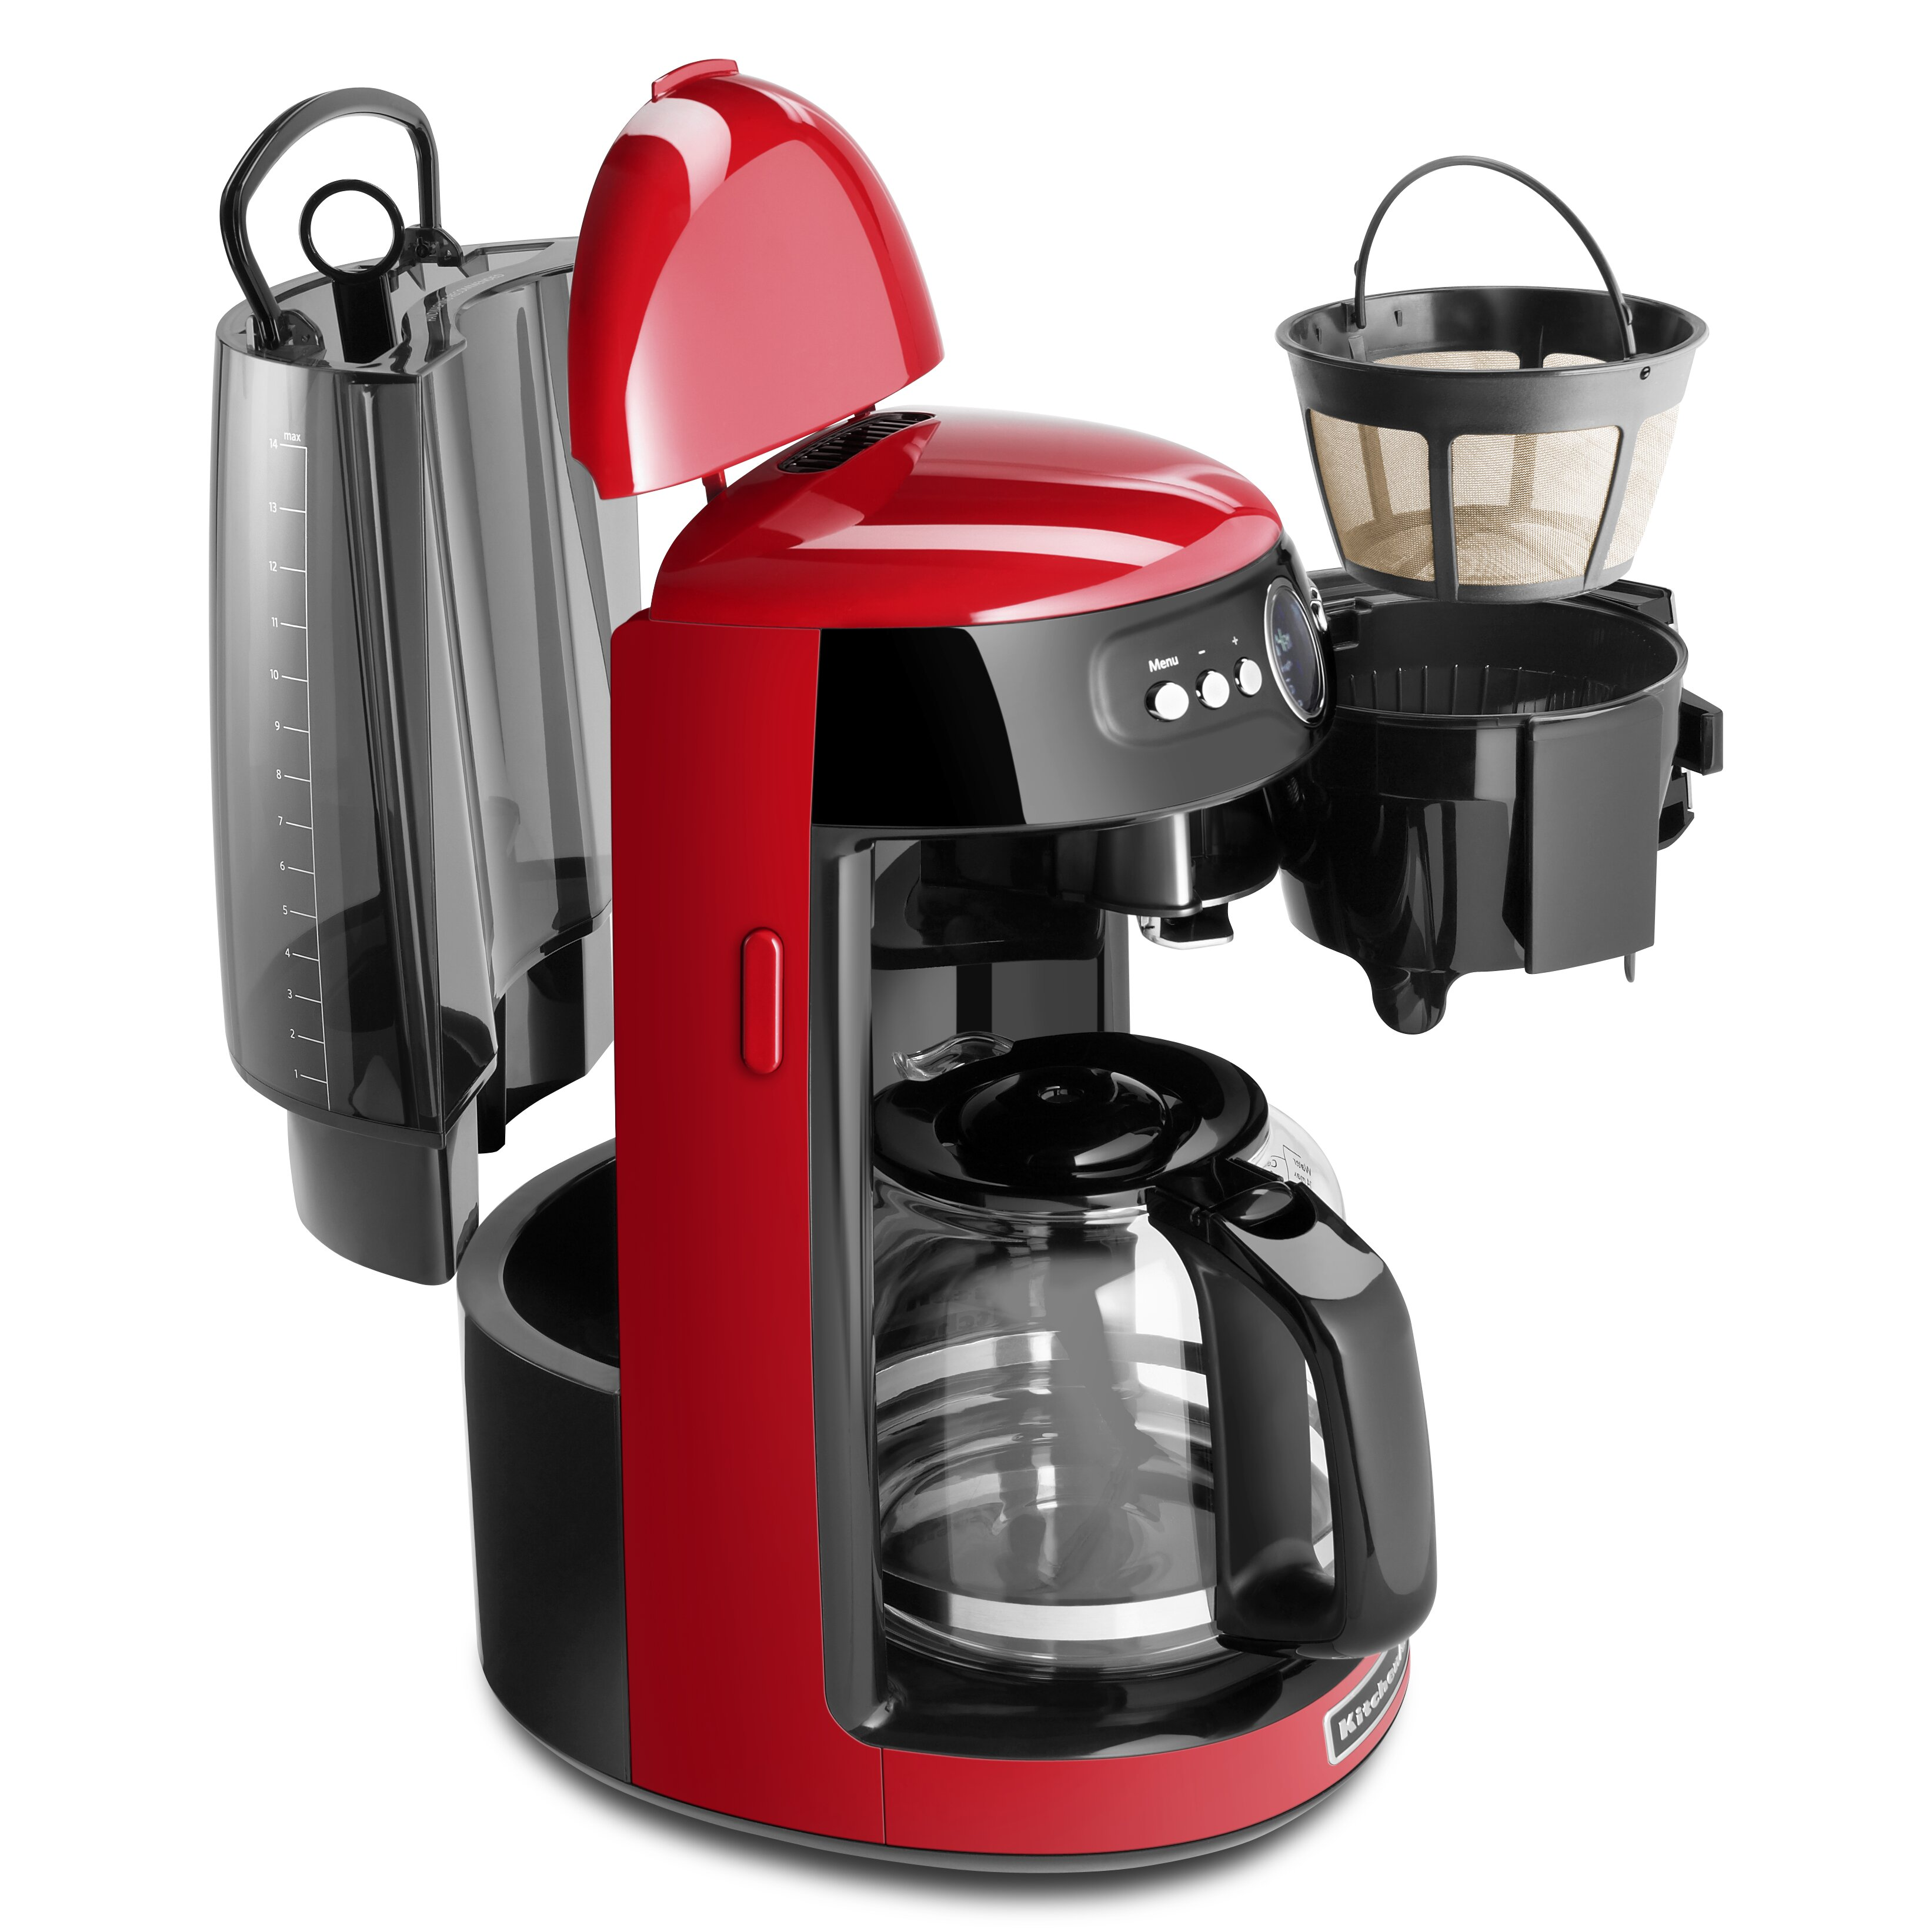 Coffee Maker With Carafe Reviews : KitchenAid 14 Cup Glass Carafe Coffee Maker & Reviews Wayfair